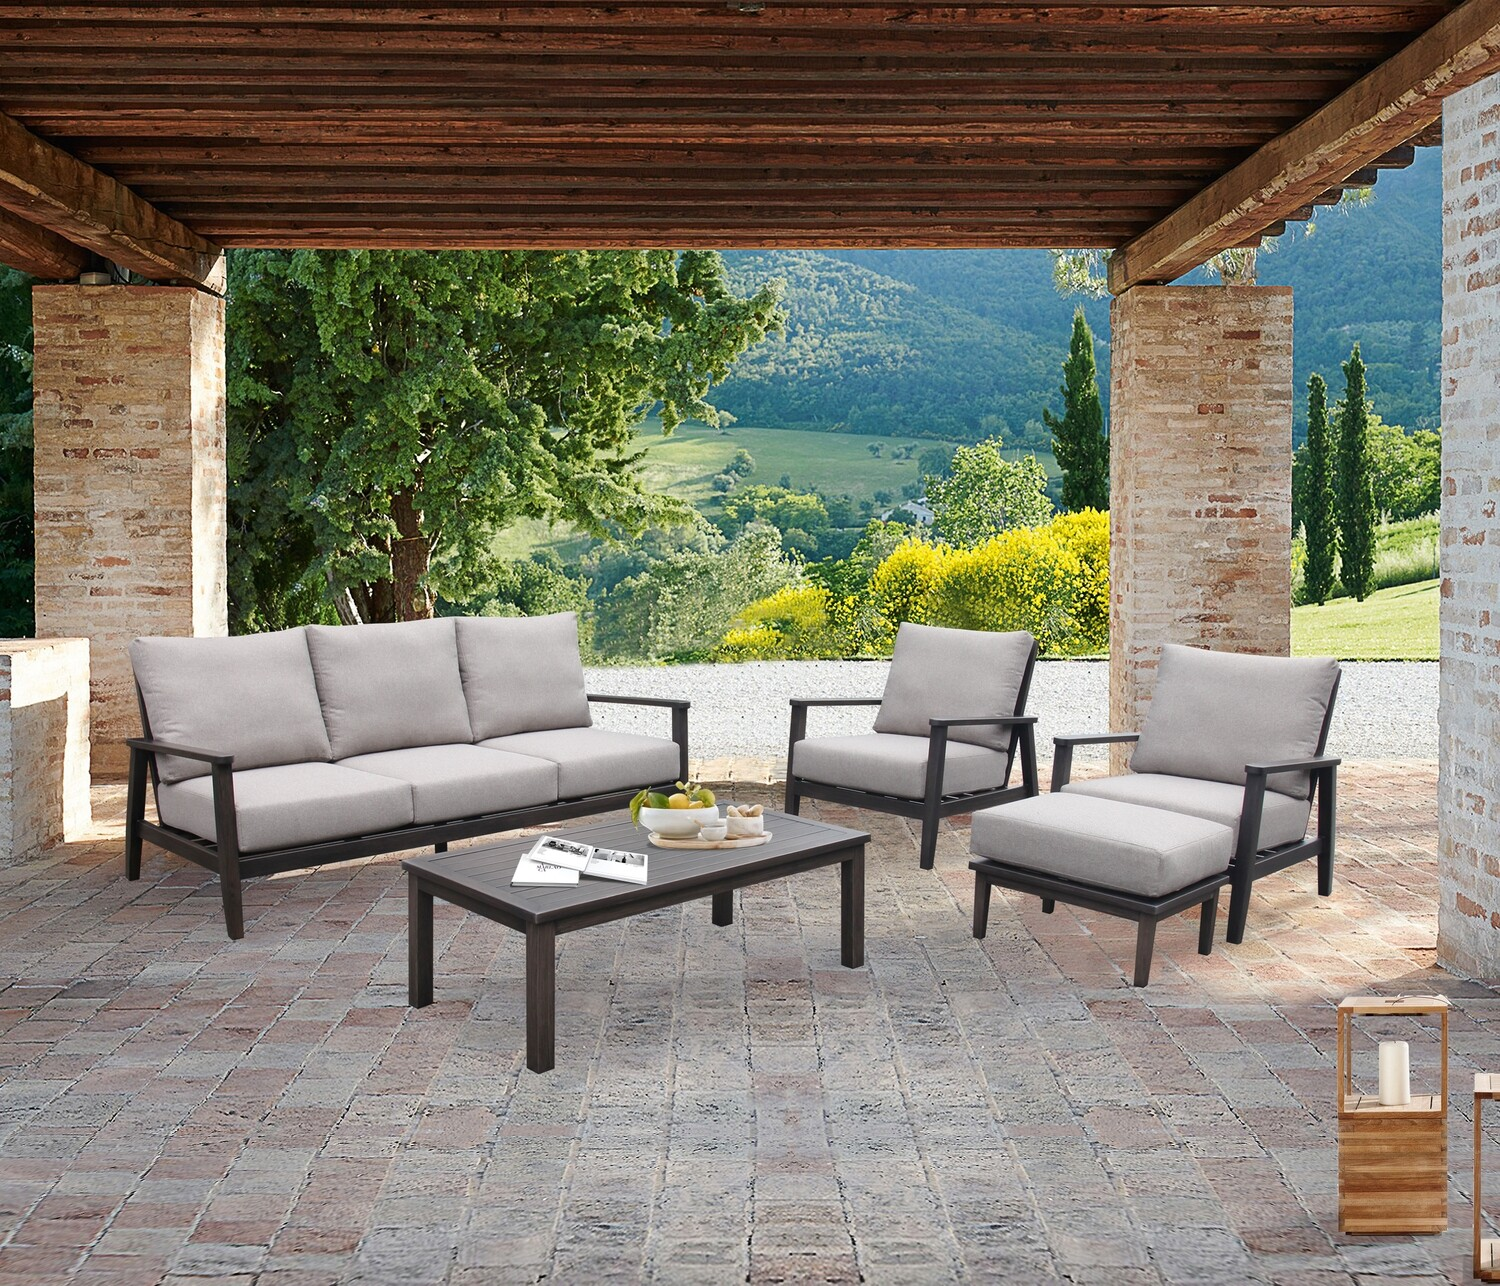 5-Piece Aluminum Outdoor Sofa Conversation Set with Cushions